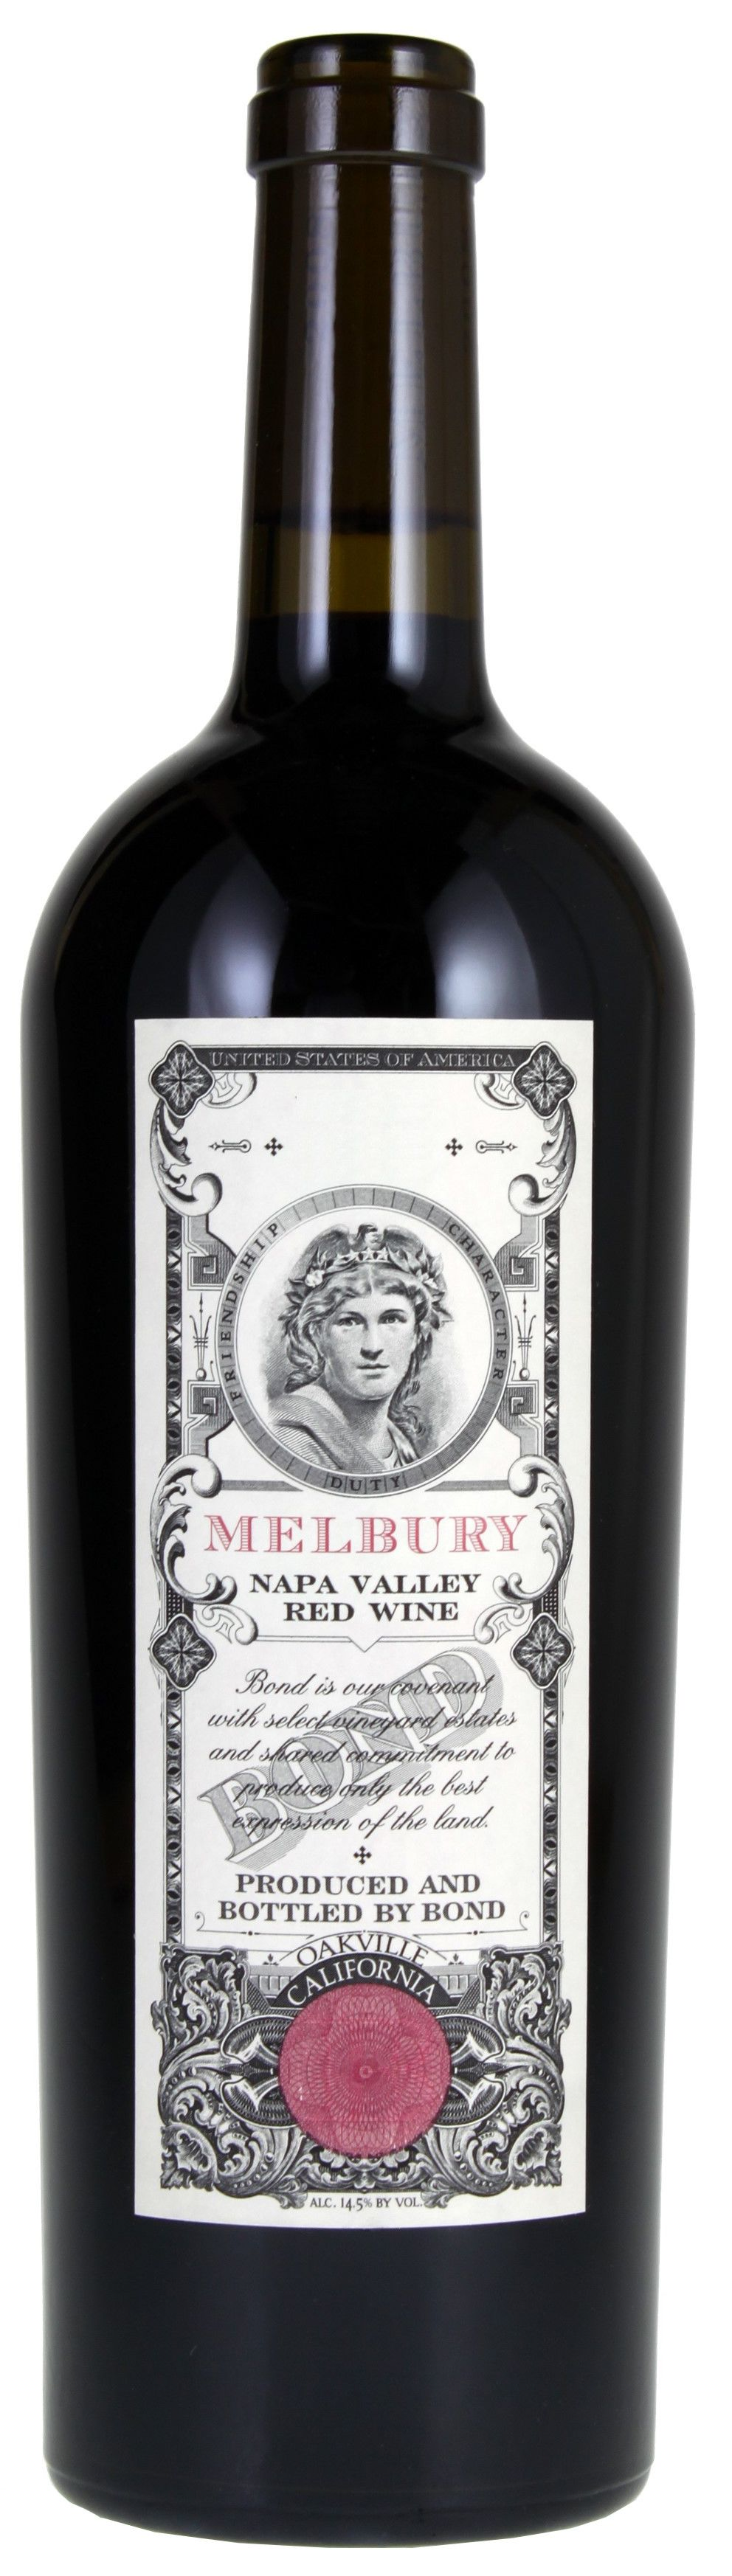 Bond Melbury 2005  Front Bottle Shot